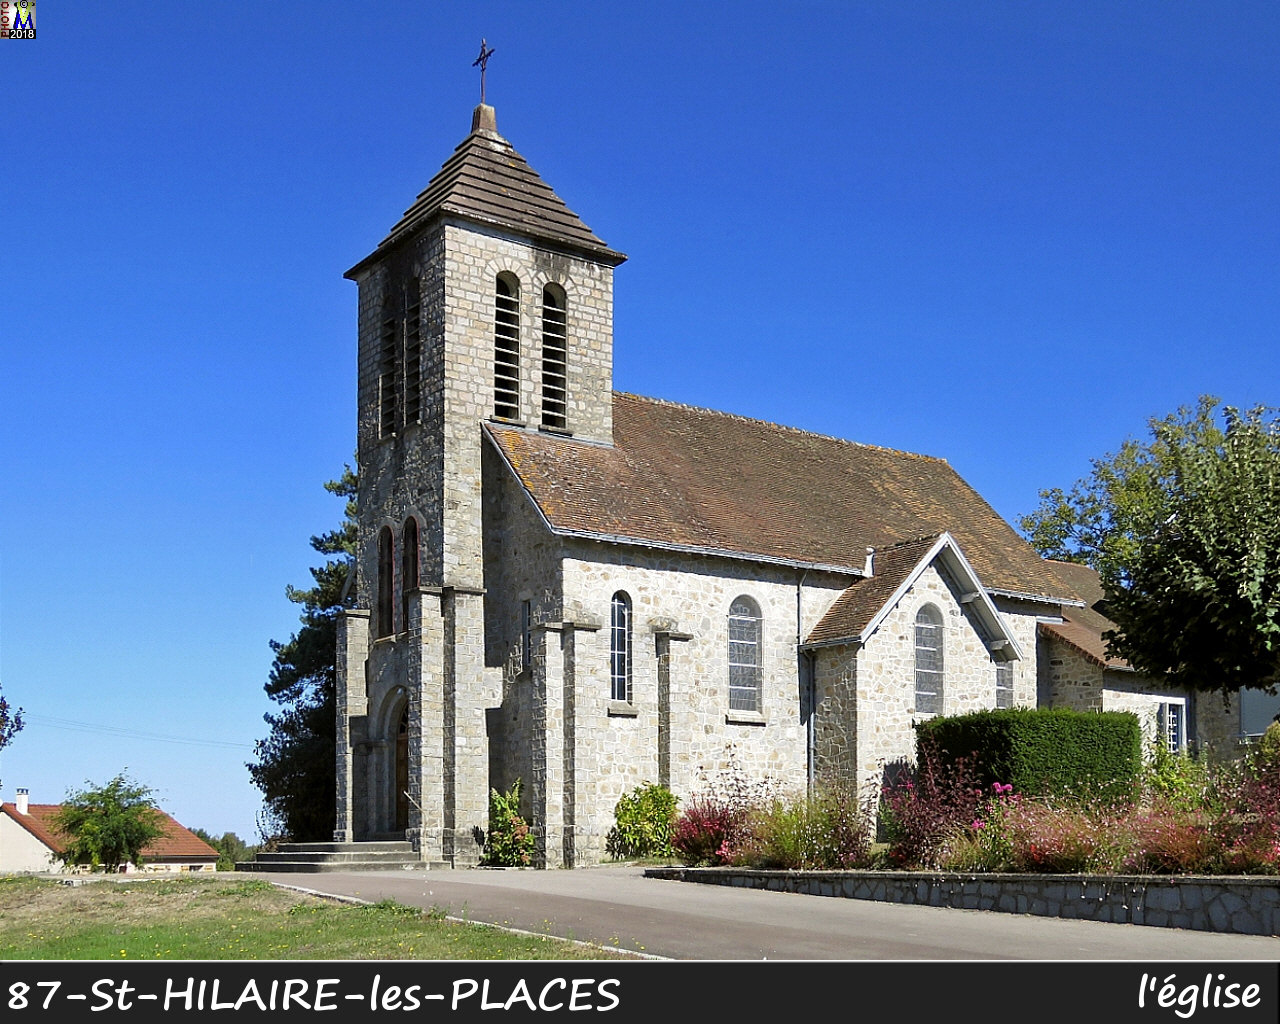 87StHILAIRE-PLACES_eglise_1002.jpg